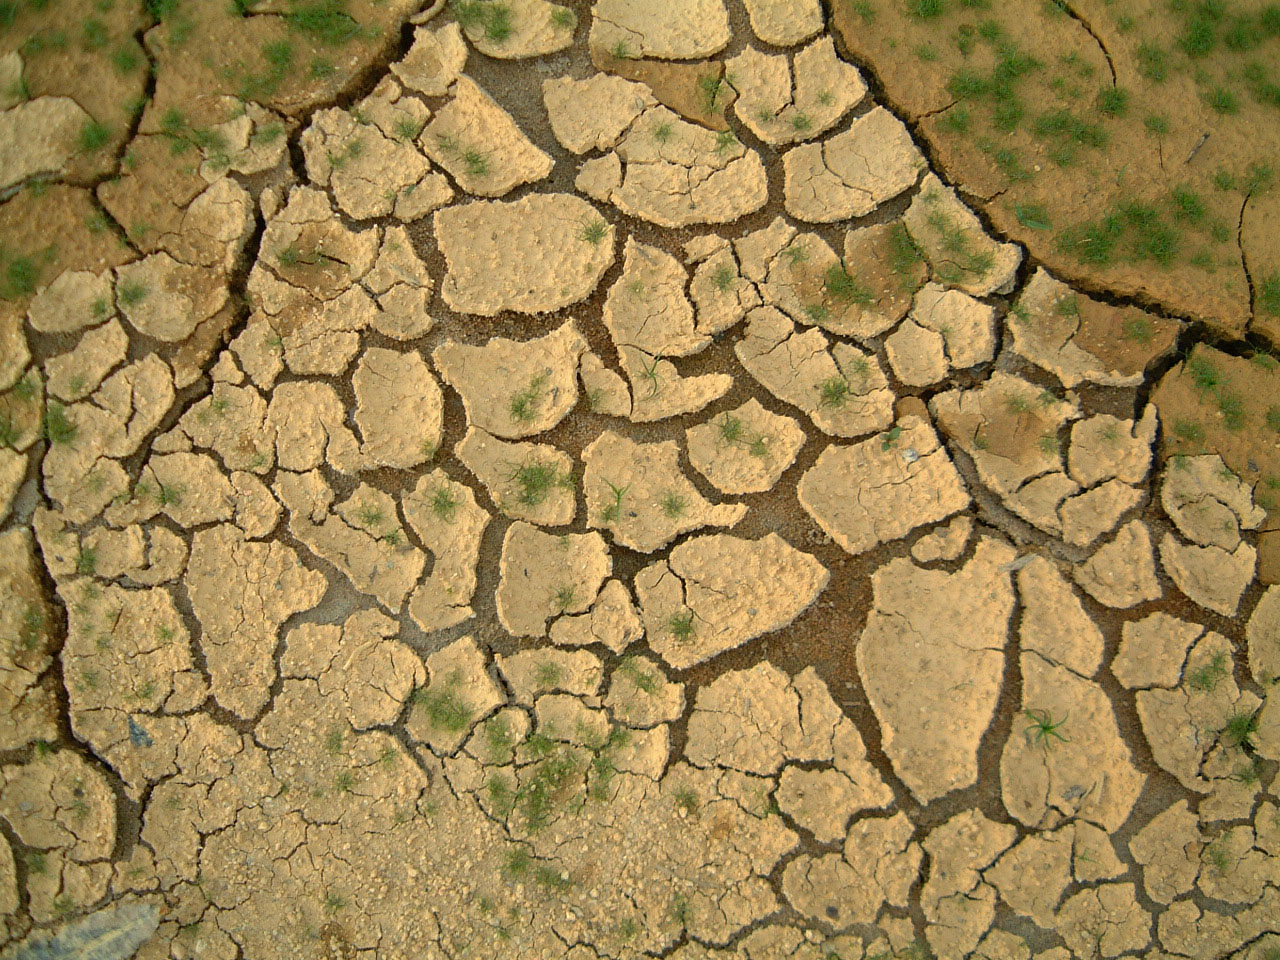 Textures Mud Clay Cracked Soil Earth 01